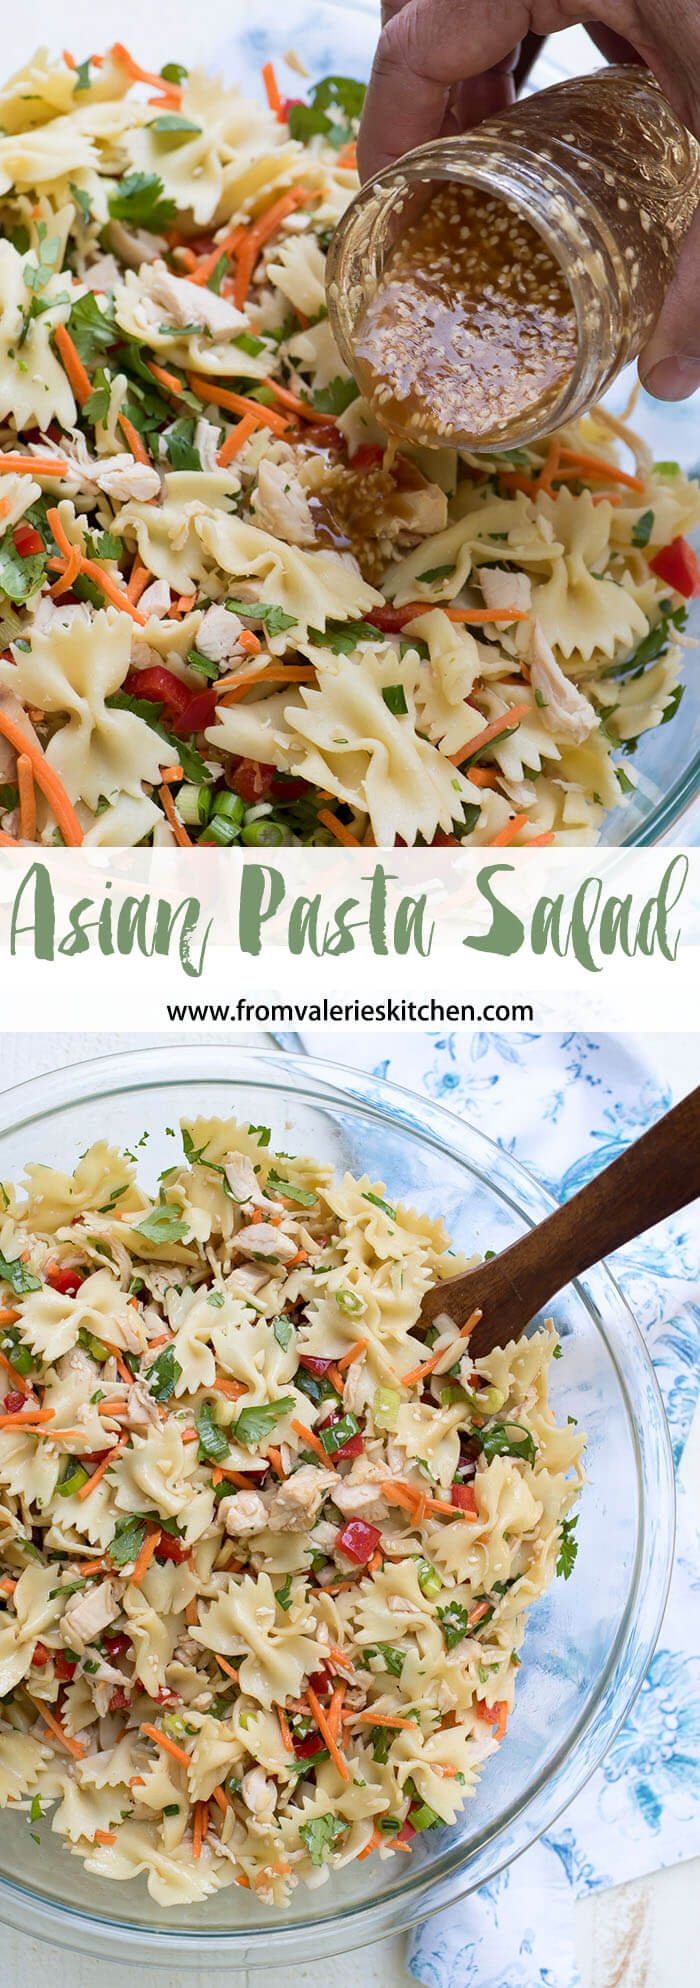 This Asian Pasta Salad has a satisfying crunchy te…